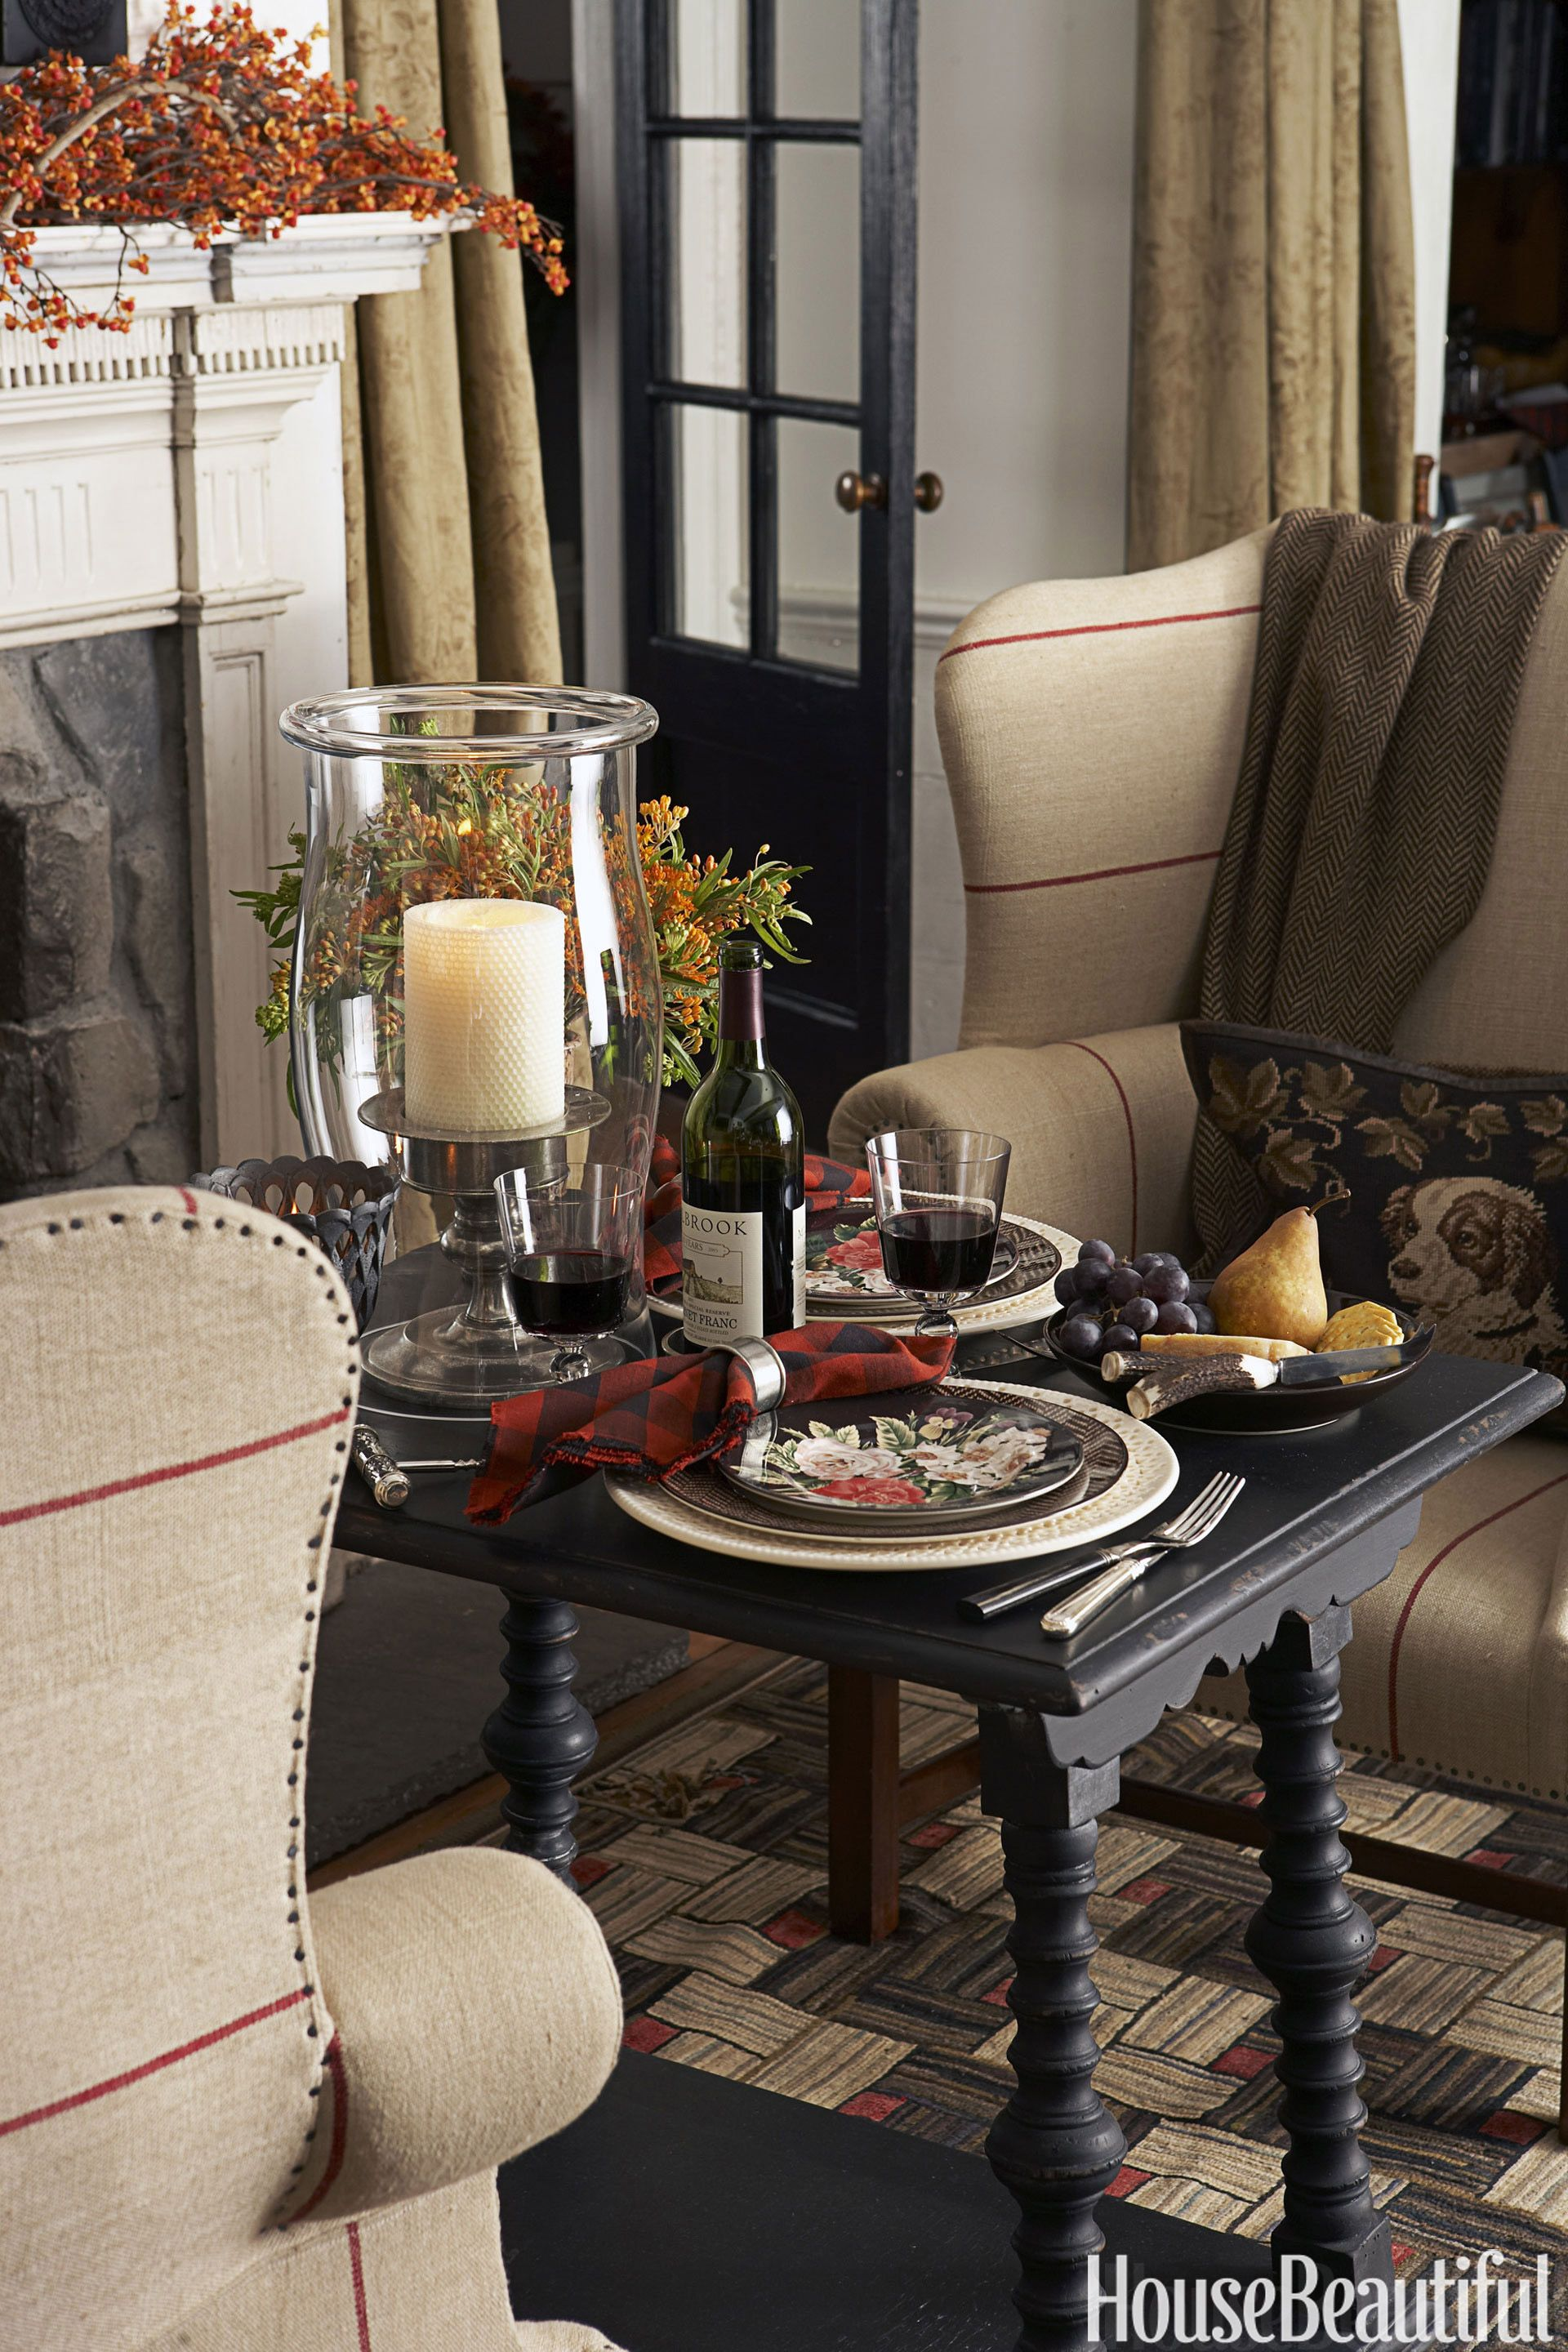 Nrm 1422643369 05 hbx ralph lauren fall tablescape 1008 jpg